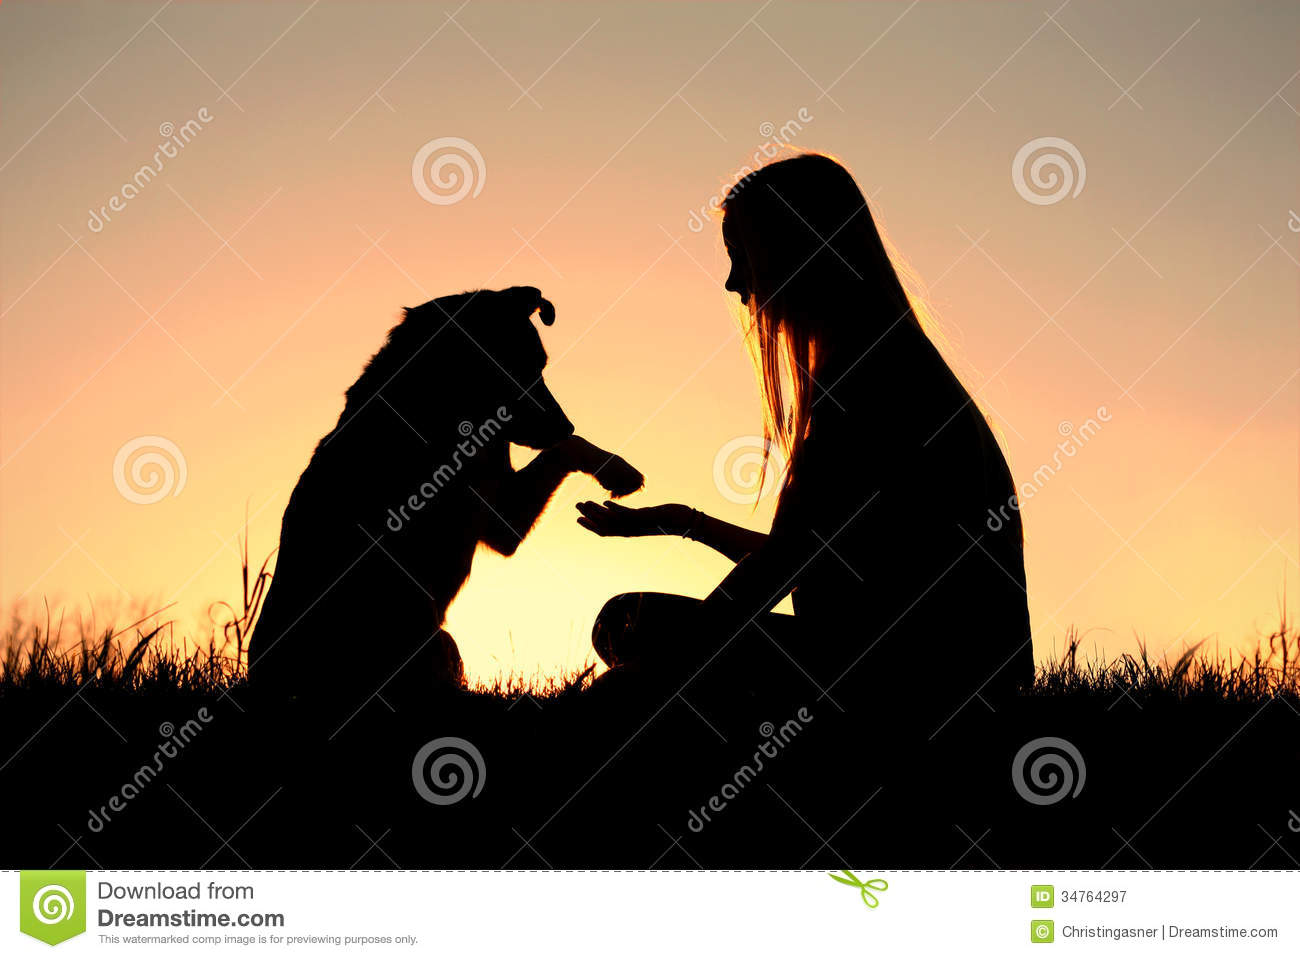 ... with her German Shepherd dog, silhouetted against the sunsetting sky